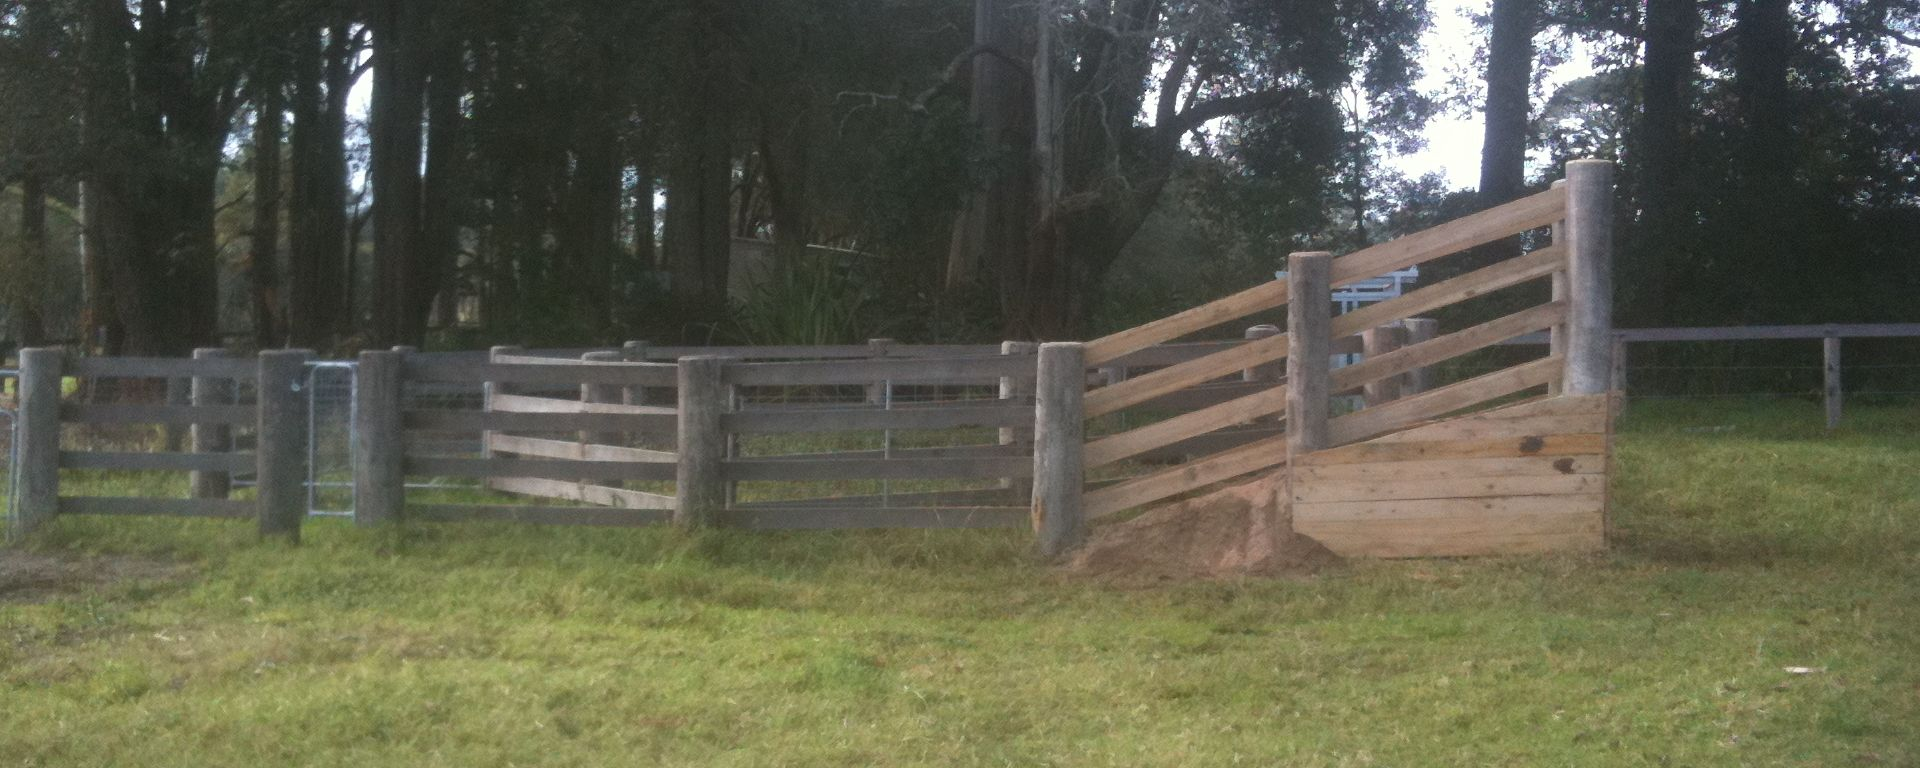 Cattle loading ramp and complete set of cattle yards